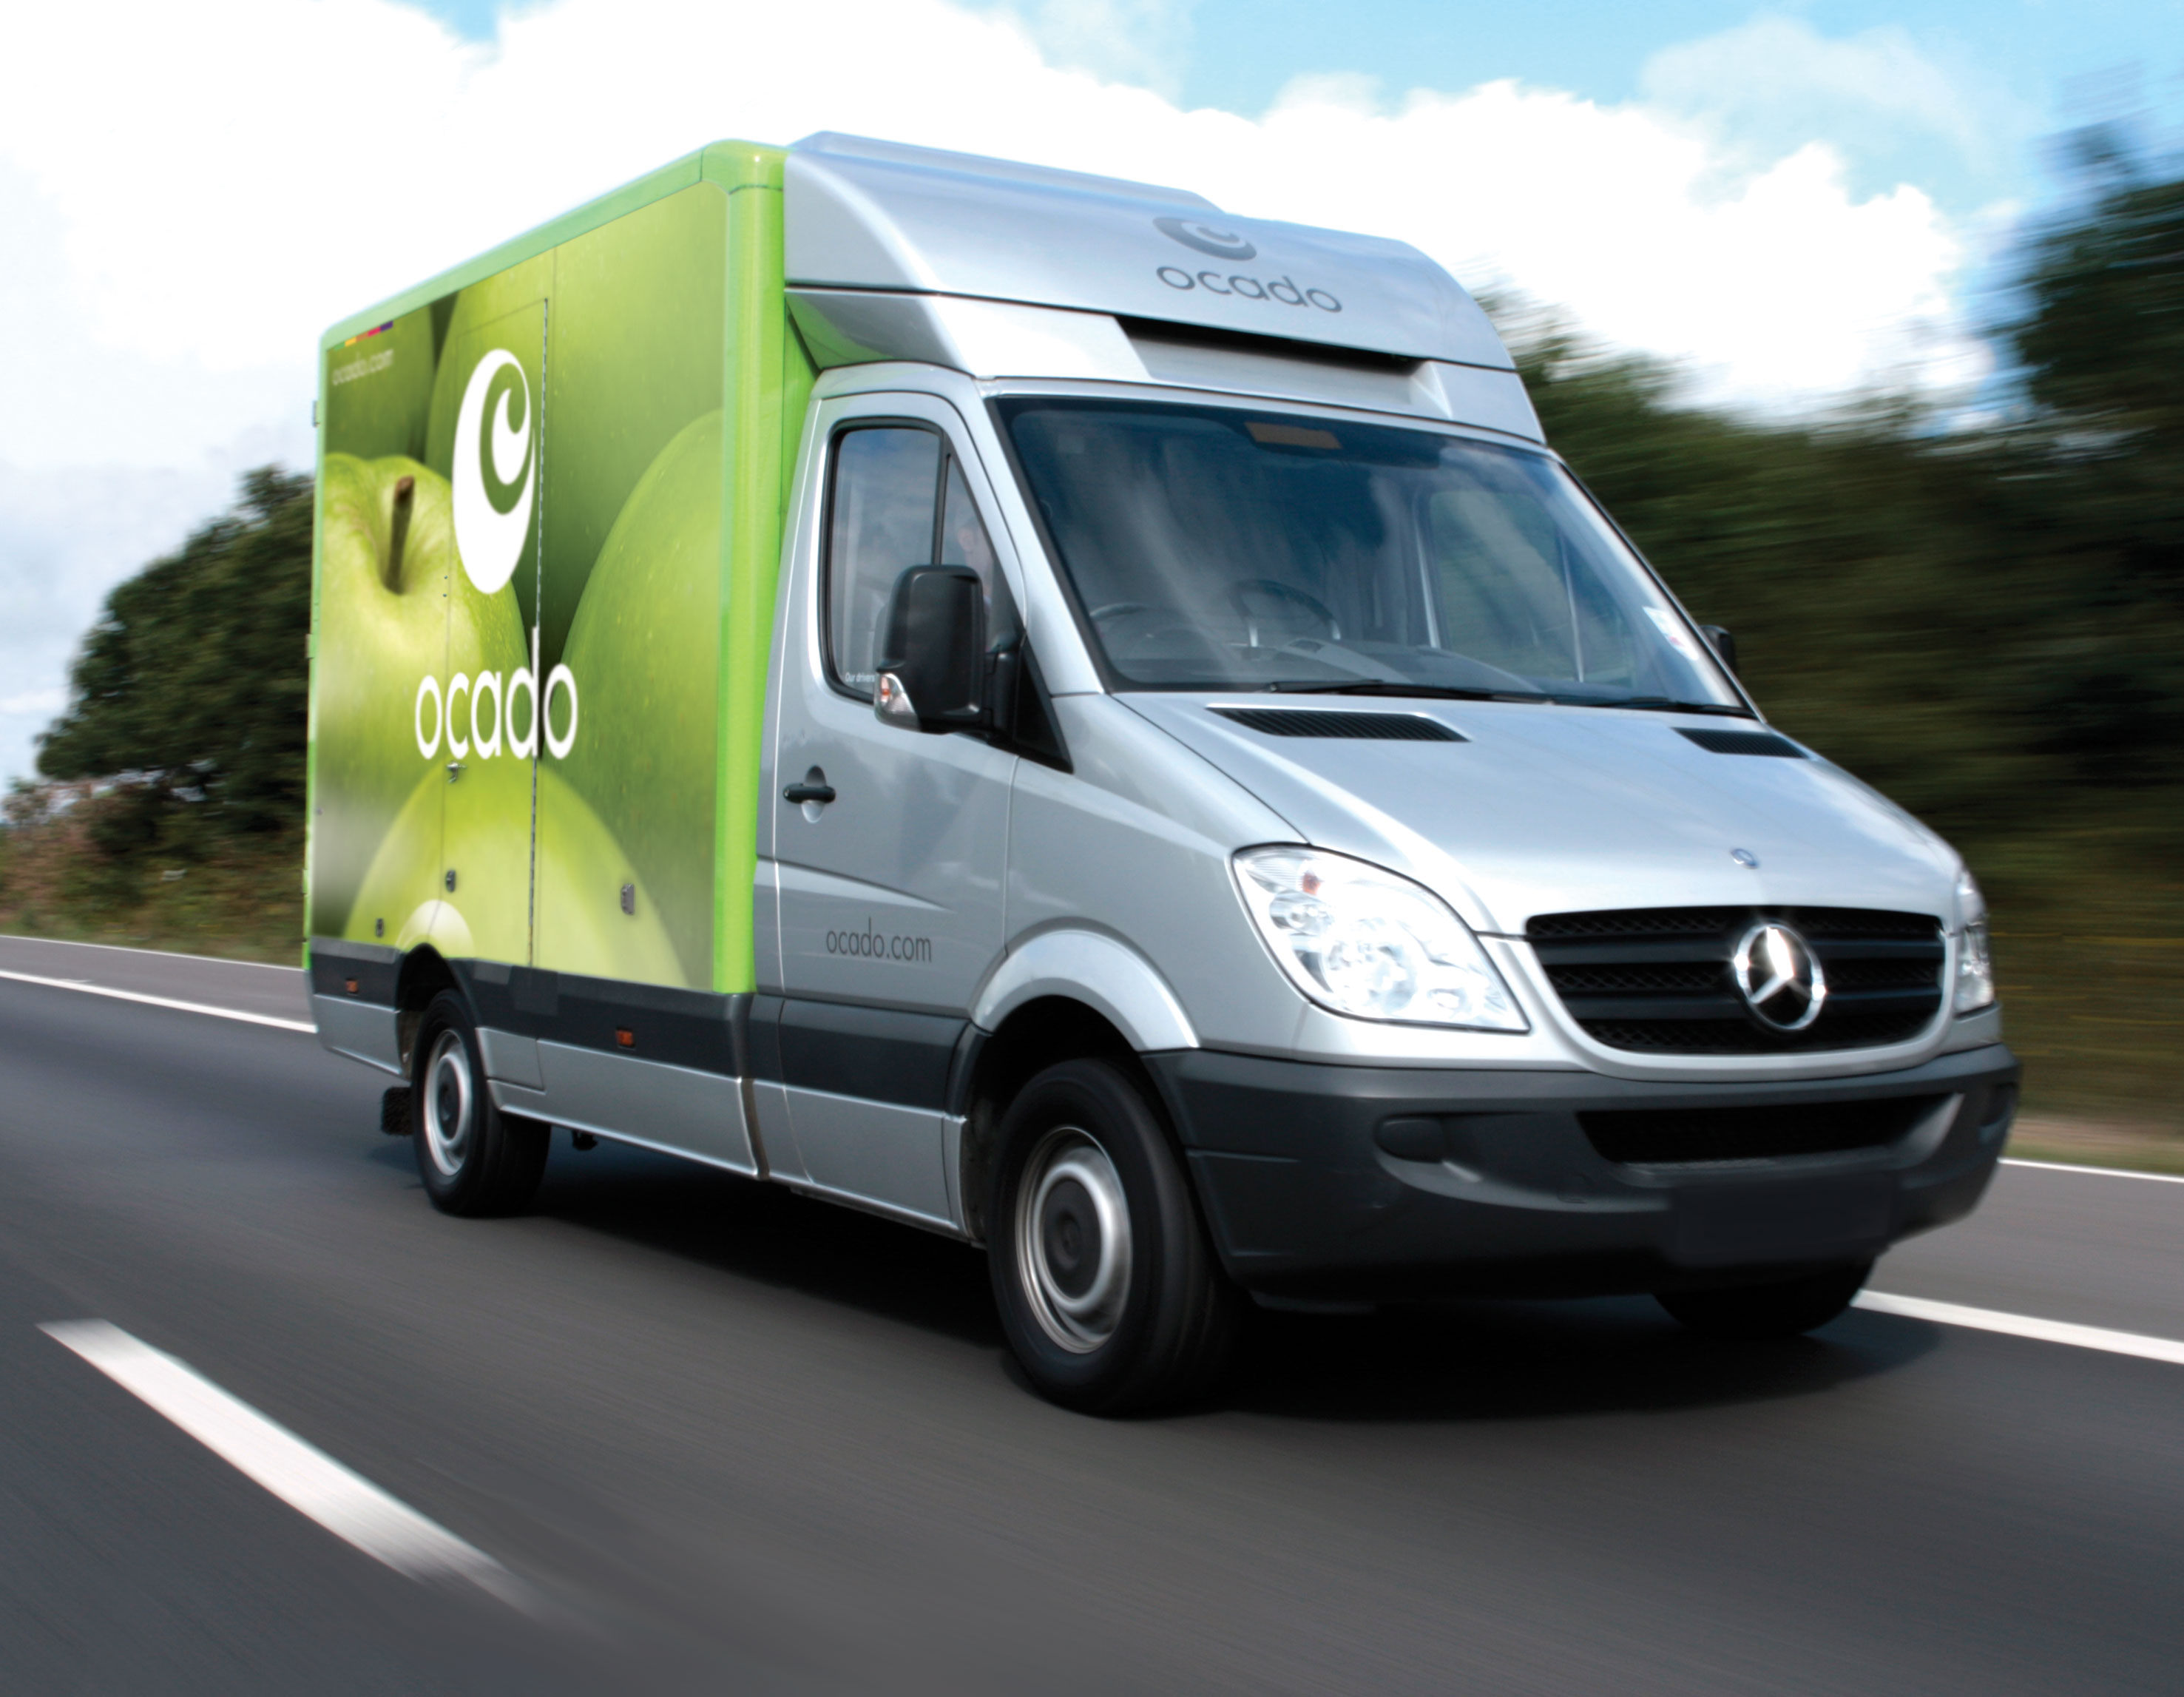 Ocado share price: Investors to eye update on potential M&S deal